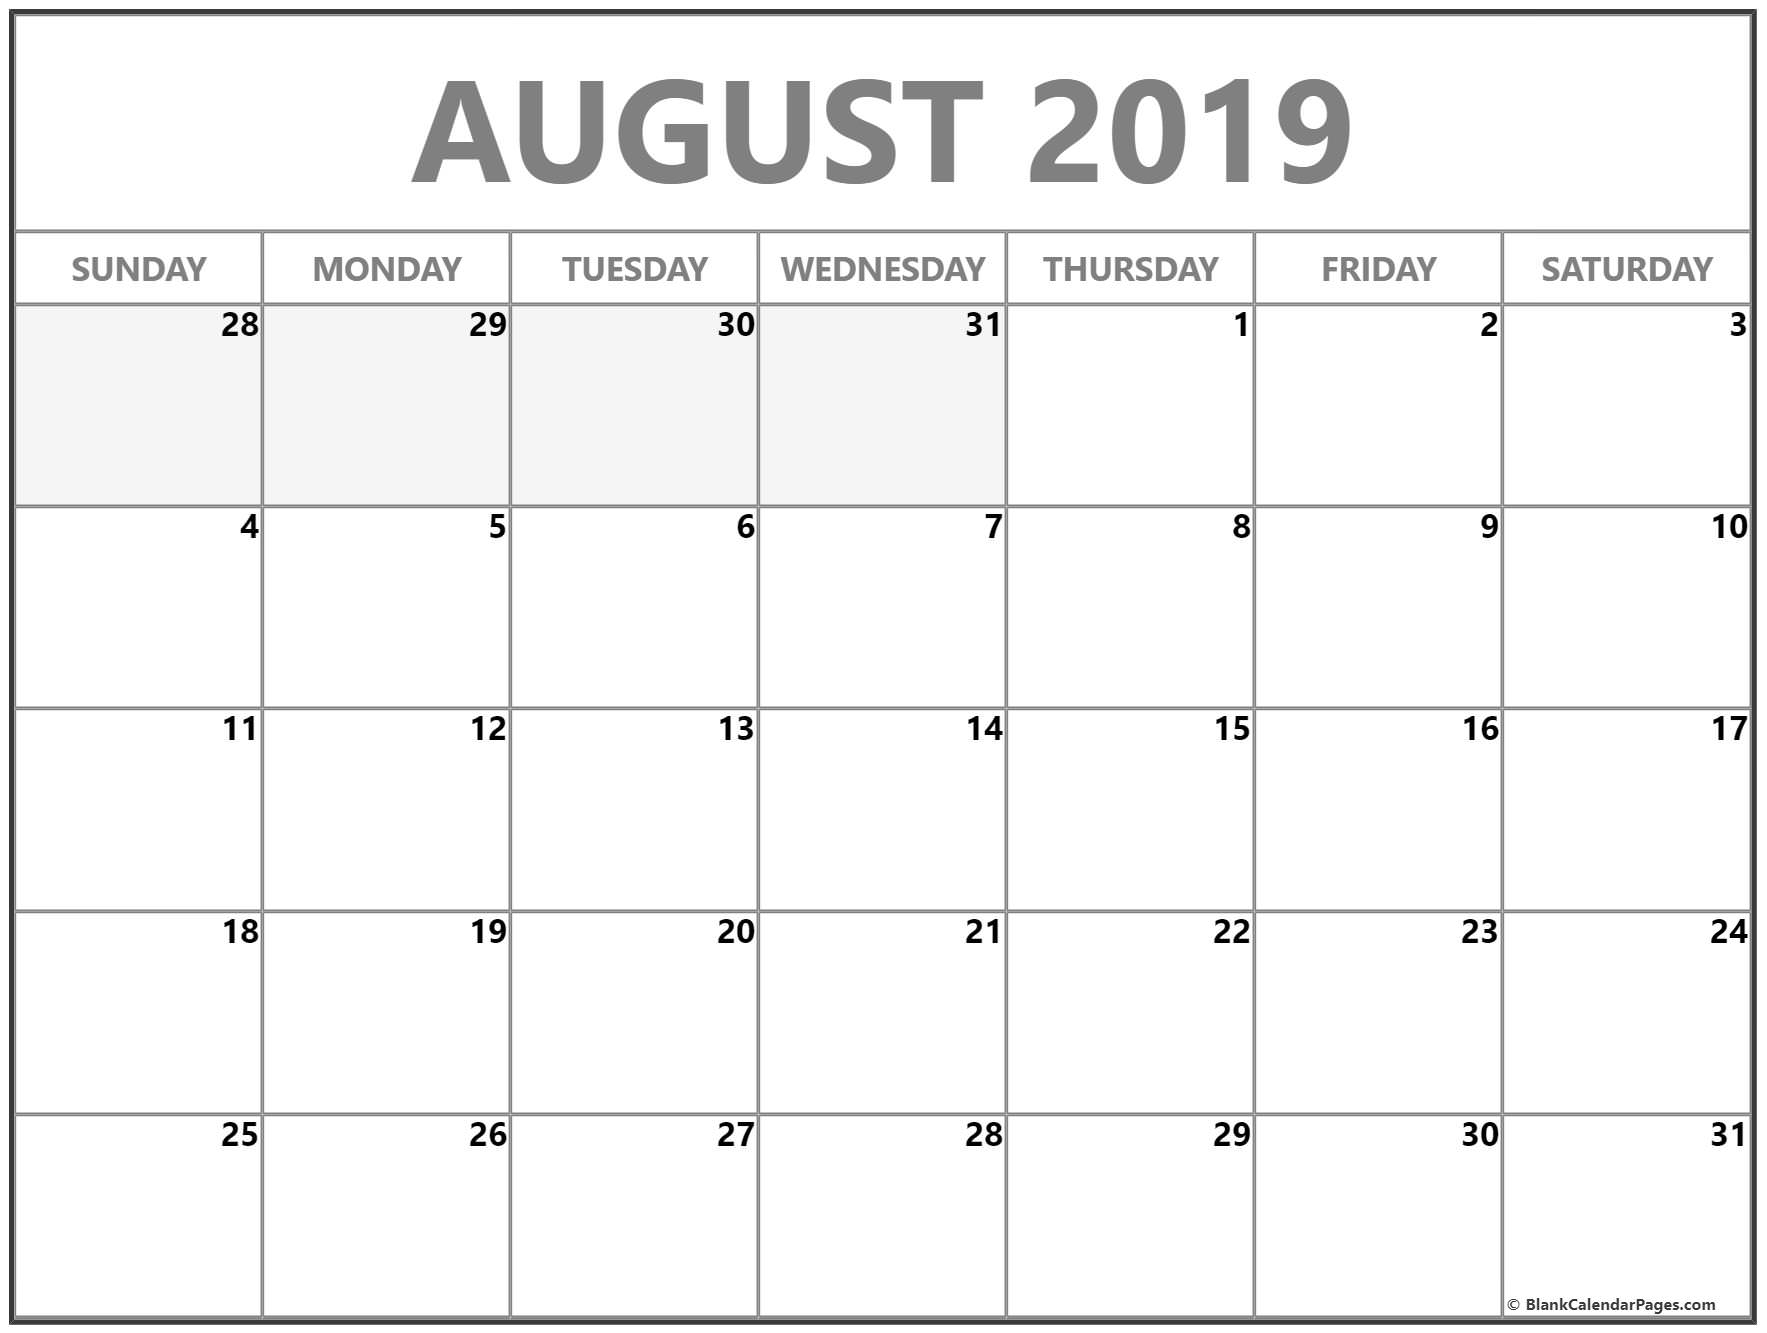 August 2019 Calendar | Free Printable Monthly Calendars regarding August Monthly Calendar Template Printable